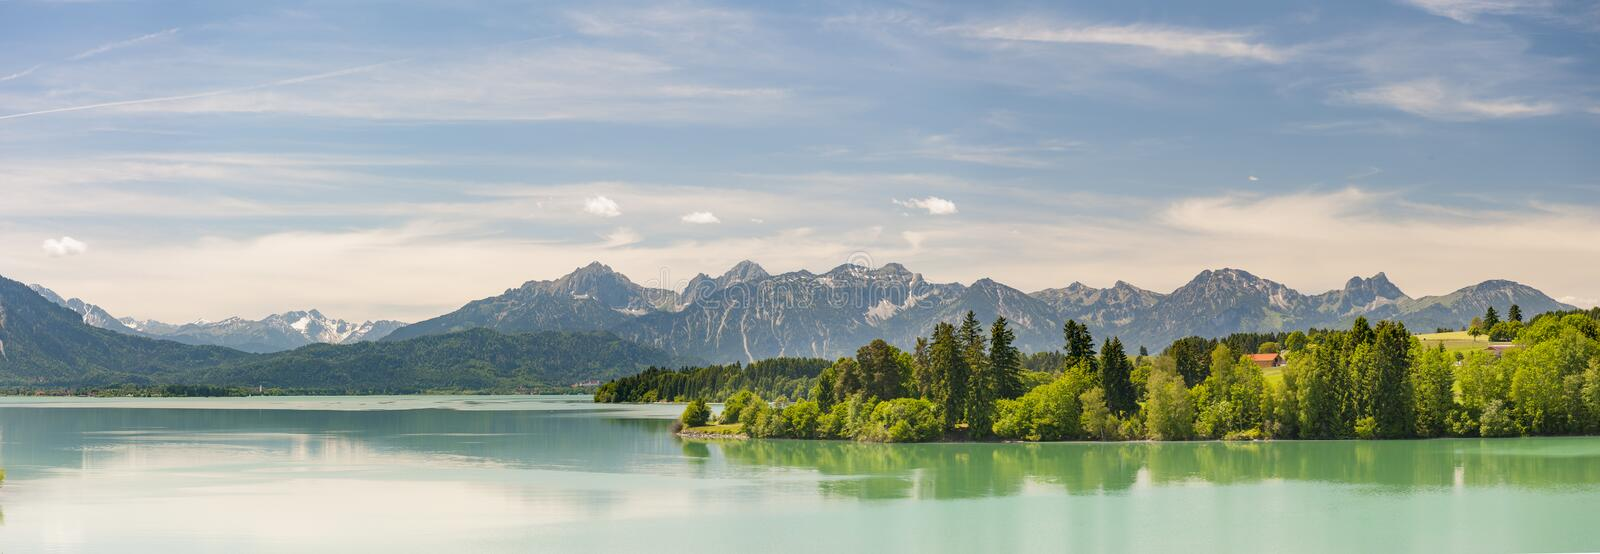 Panorama scene in Bavaria with alps mountains and lake royalty free stock photography